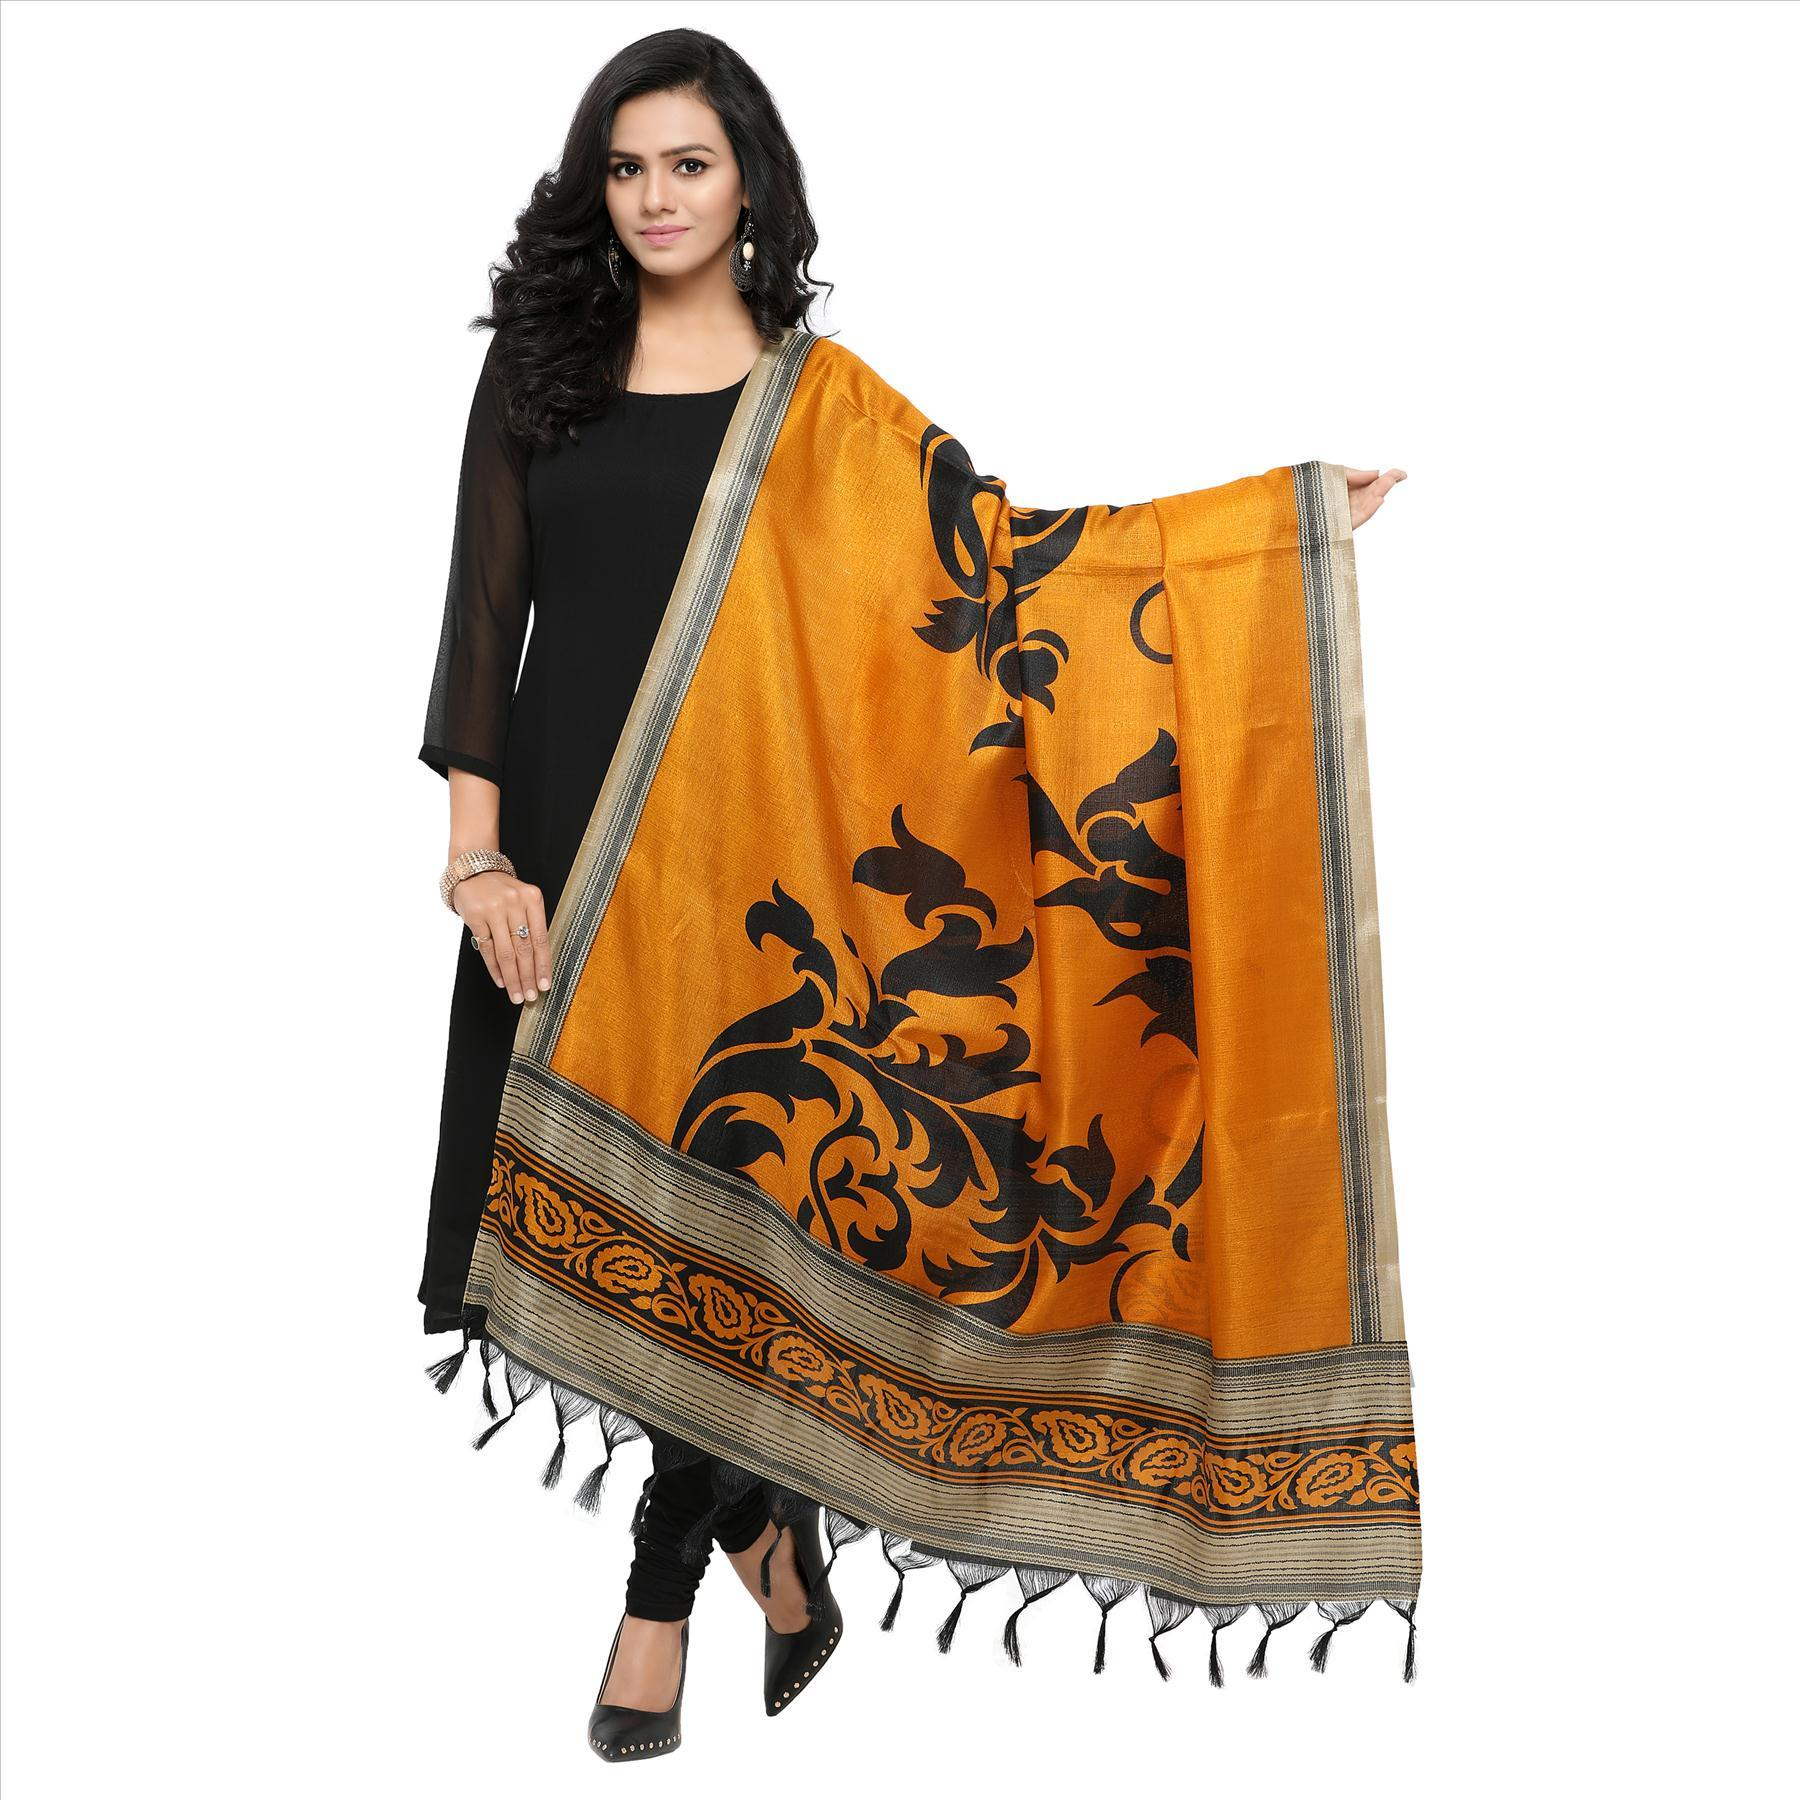 Printed Dupatta with Jhalar/ Tessals